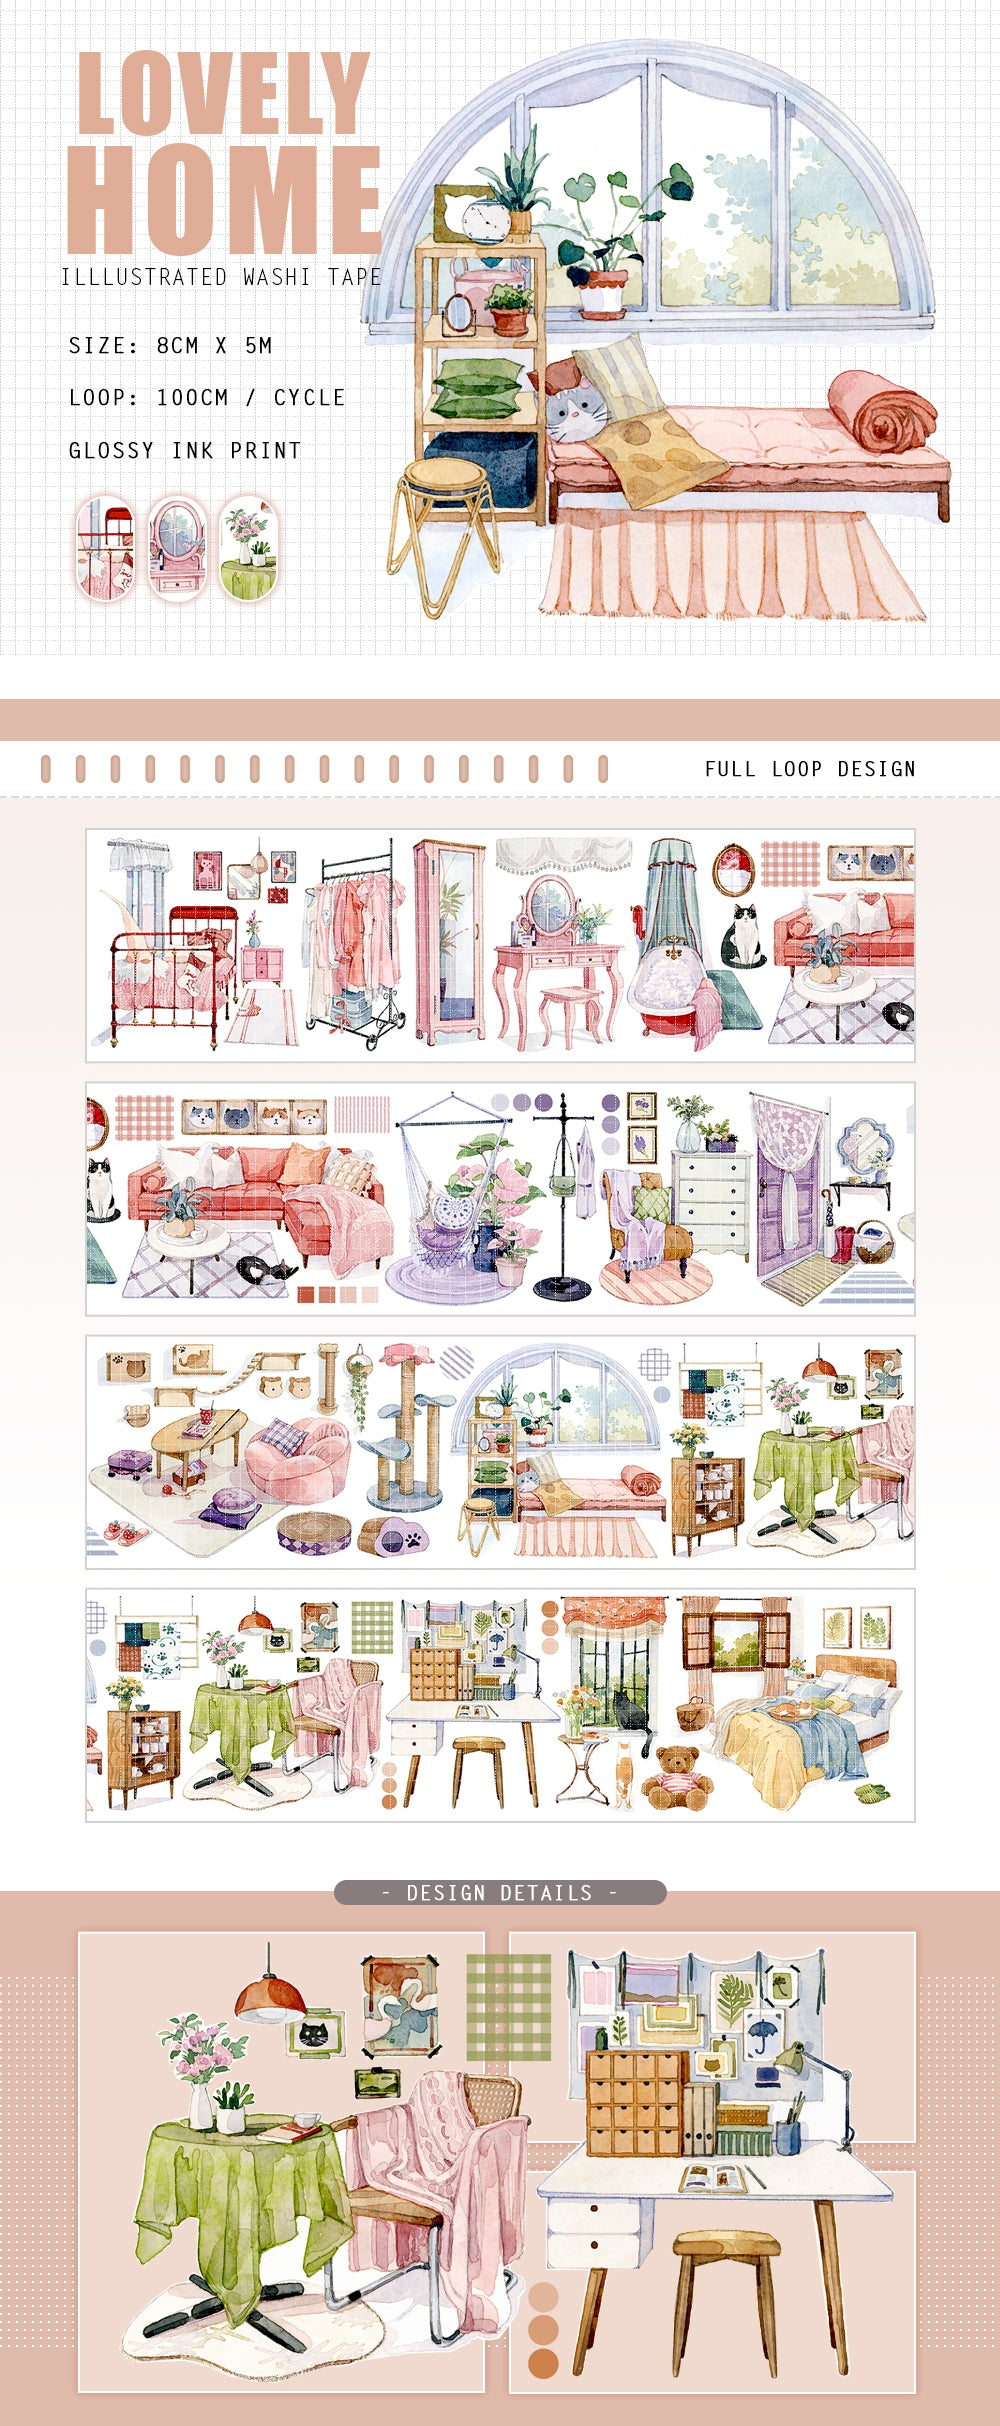 Lovely Home Washi Tape